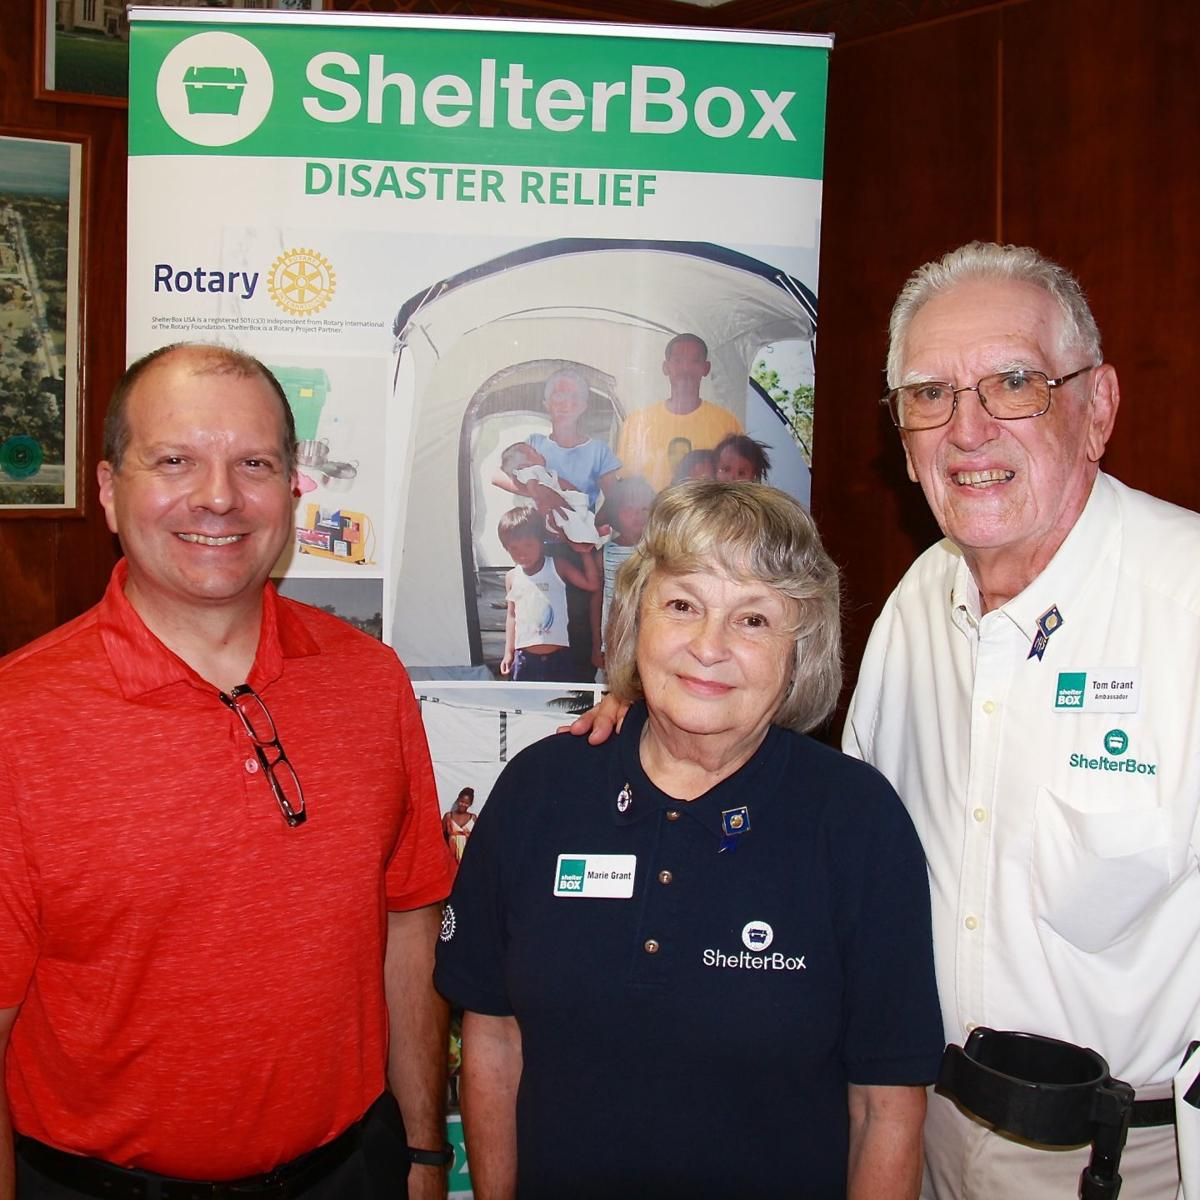 ShelterBox ambassadors are guest speakers at Rotary meeting